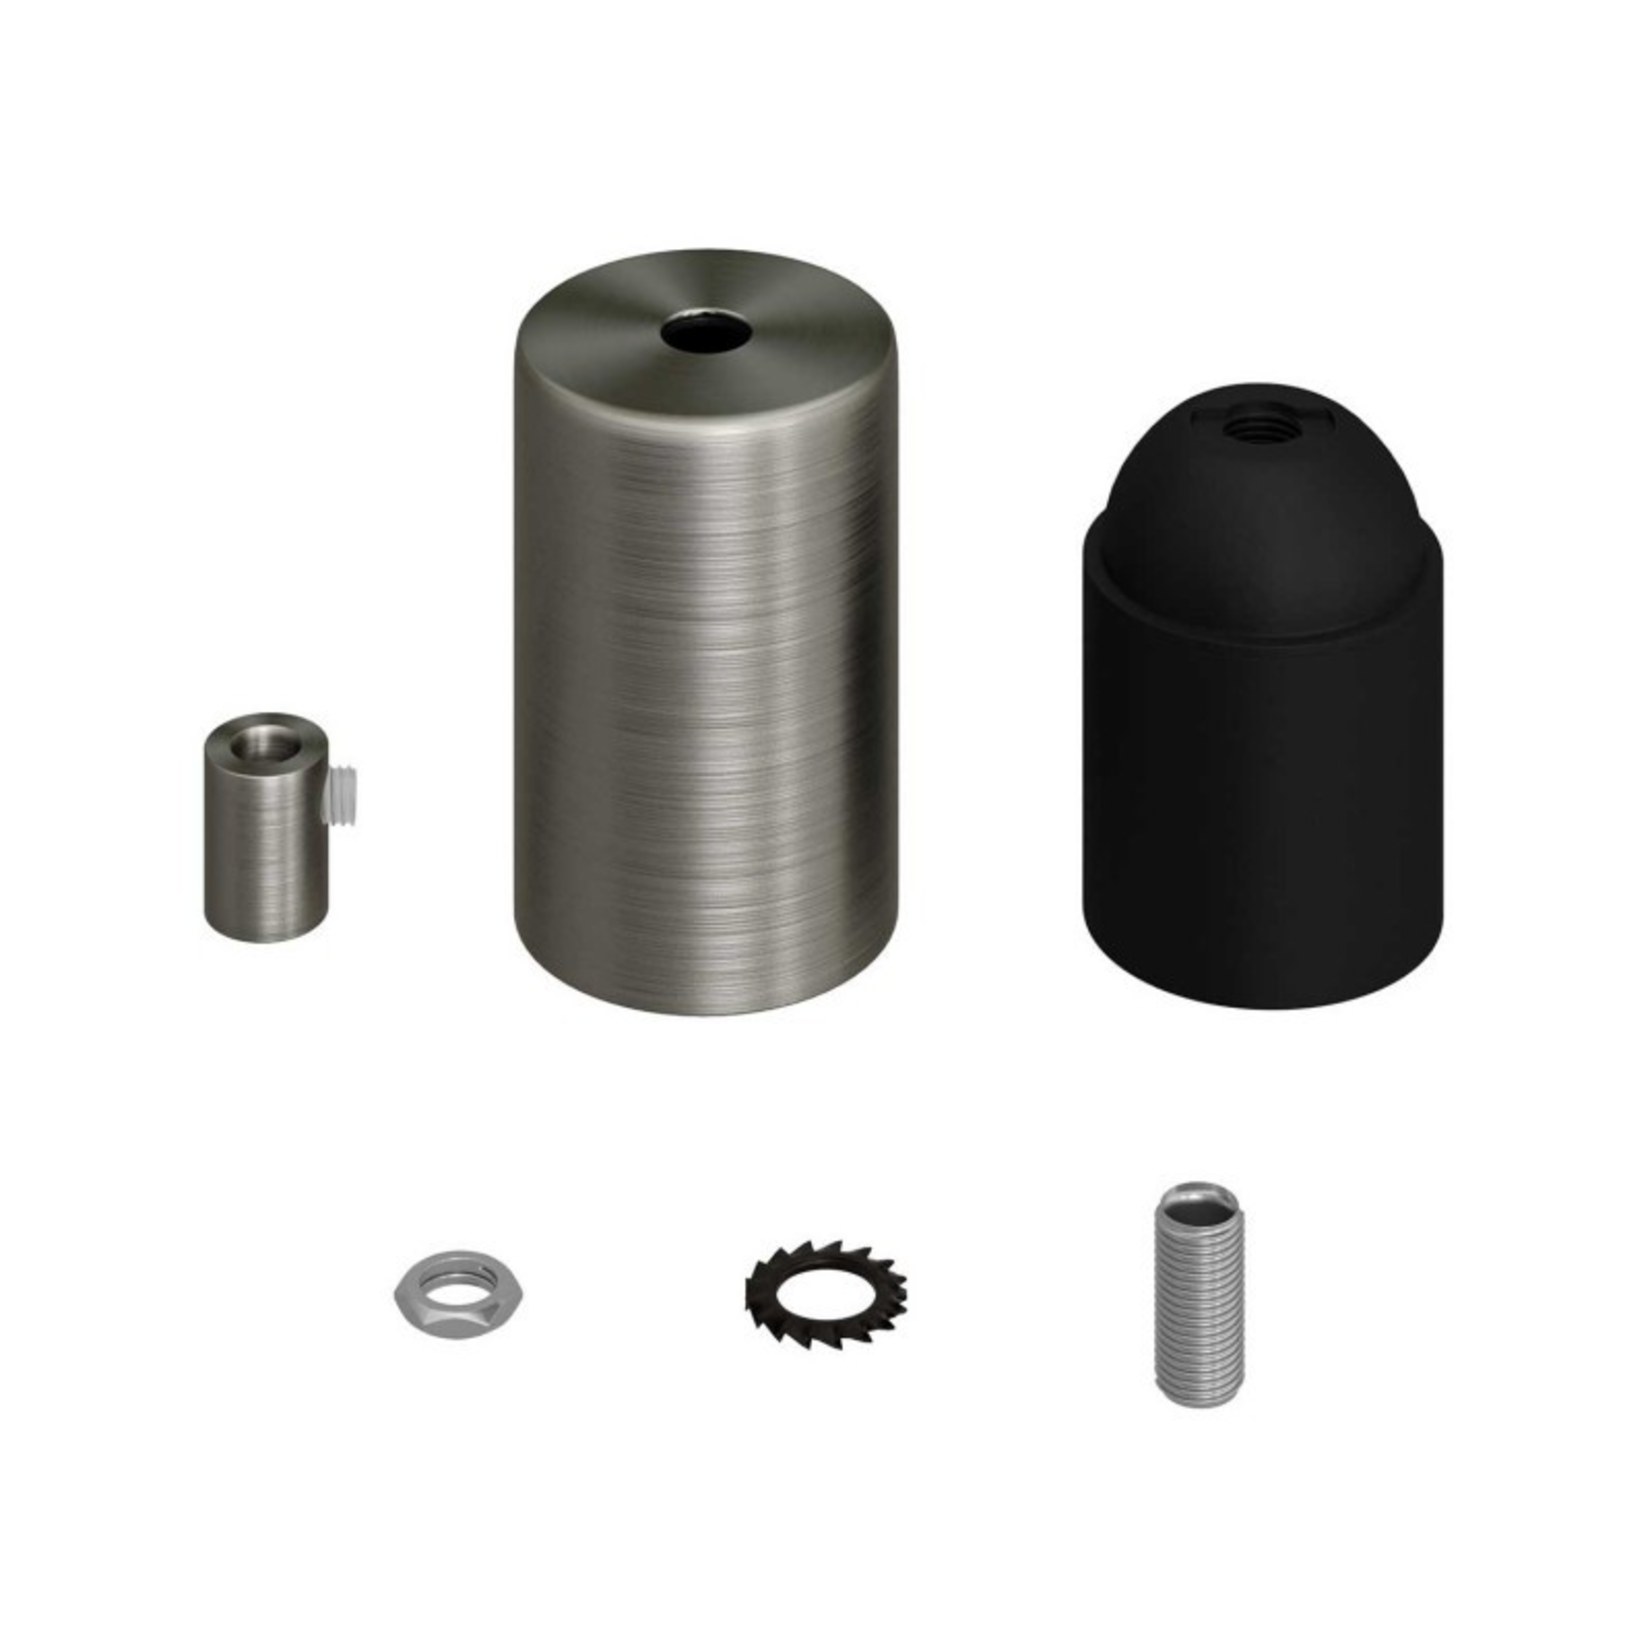 CCIT E27 Cylinder lampholder Kit with metal cap + cylindrical cable grip